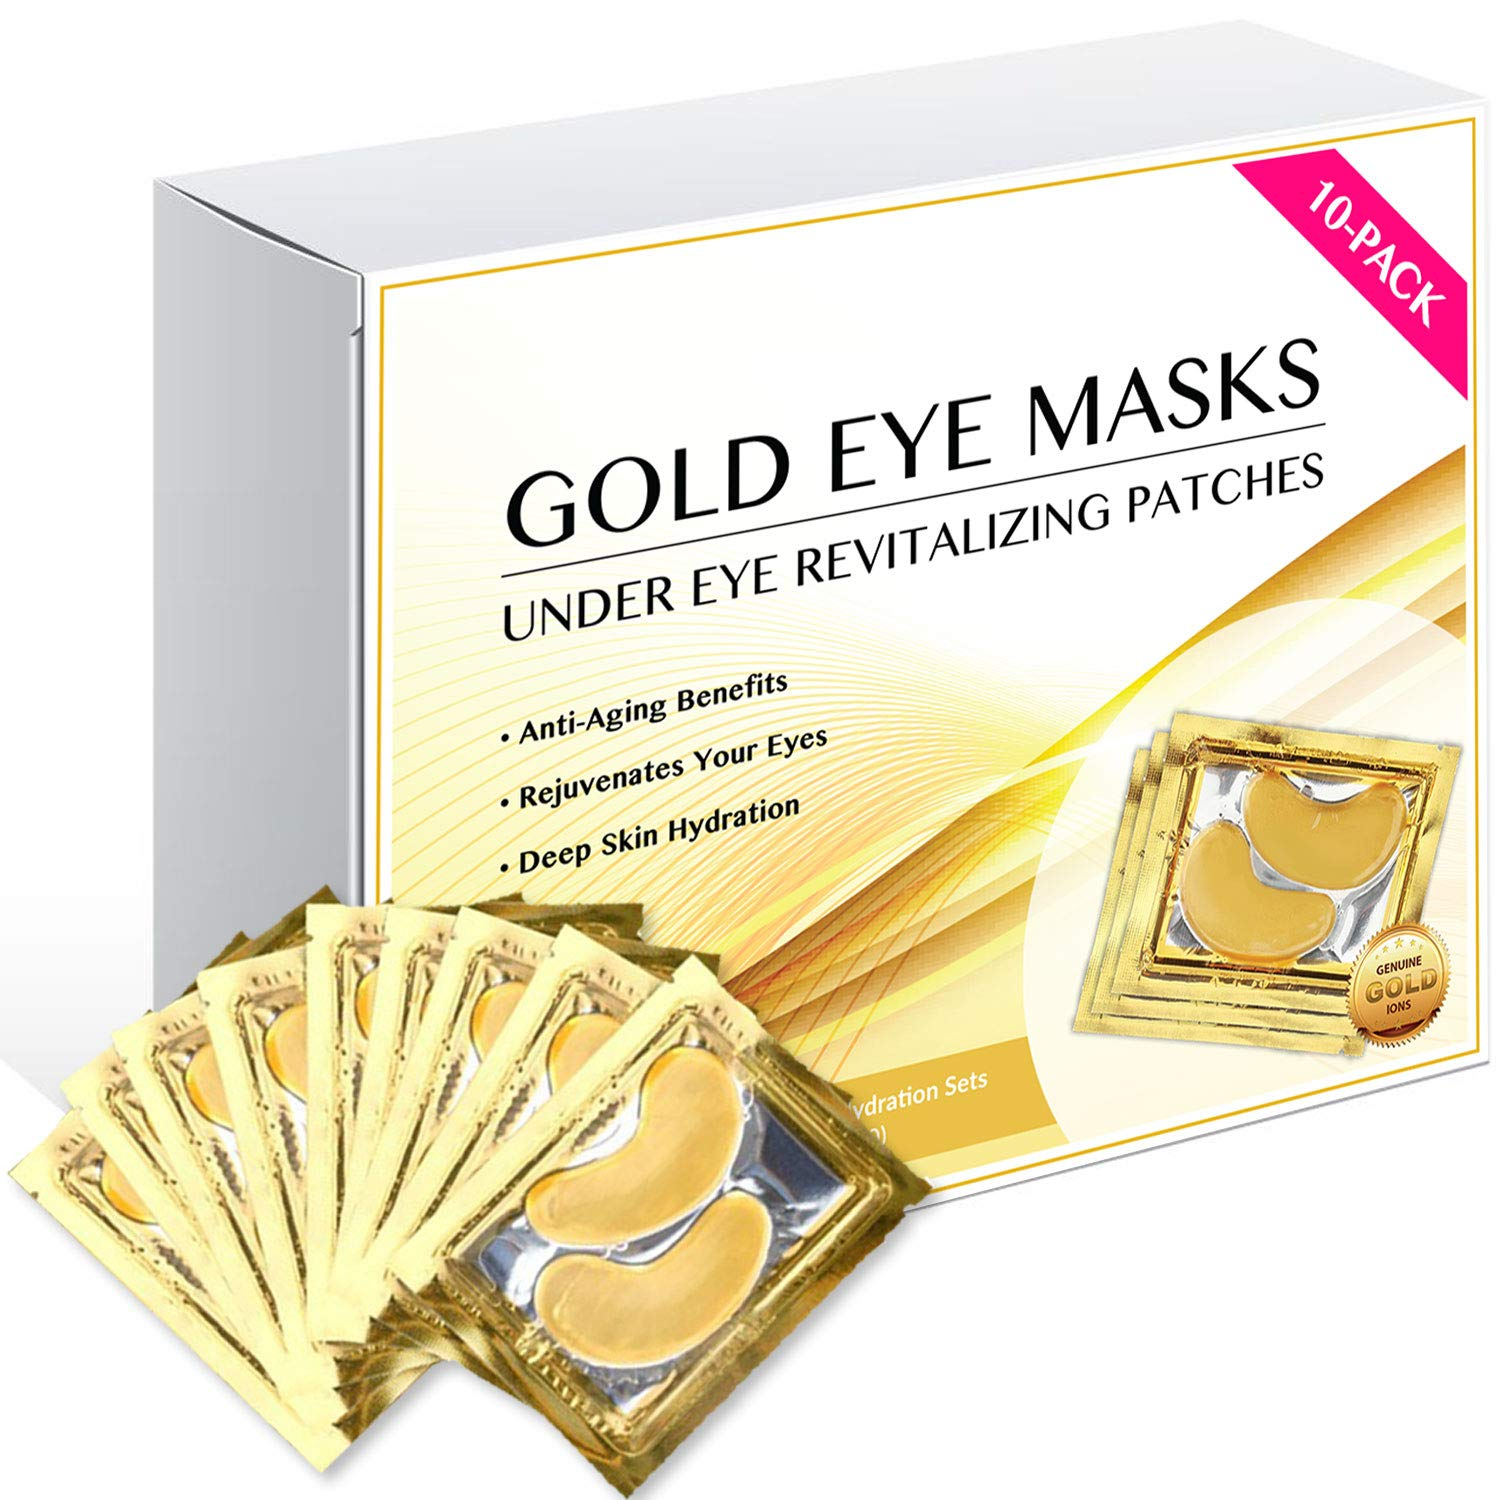 24k Gold Eye Masks Collagen Under Eye Patches